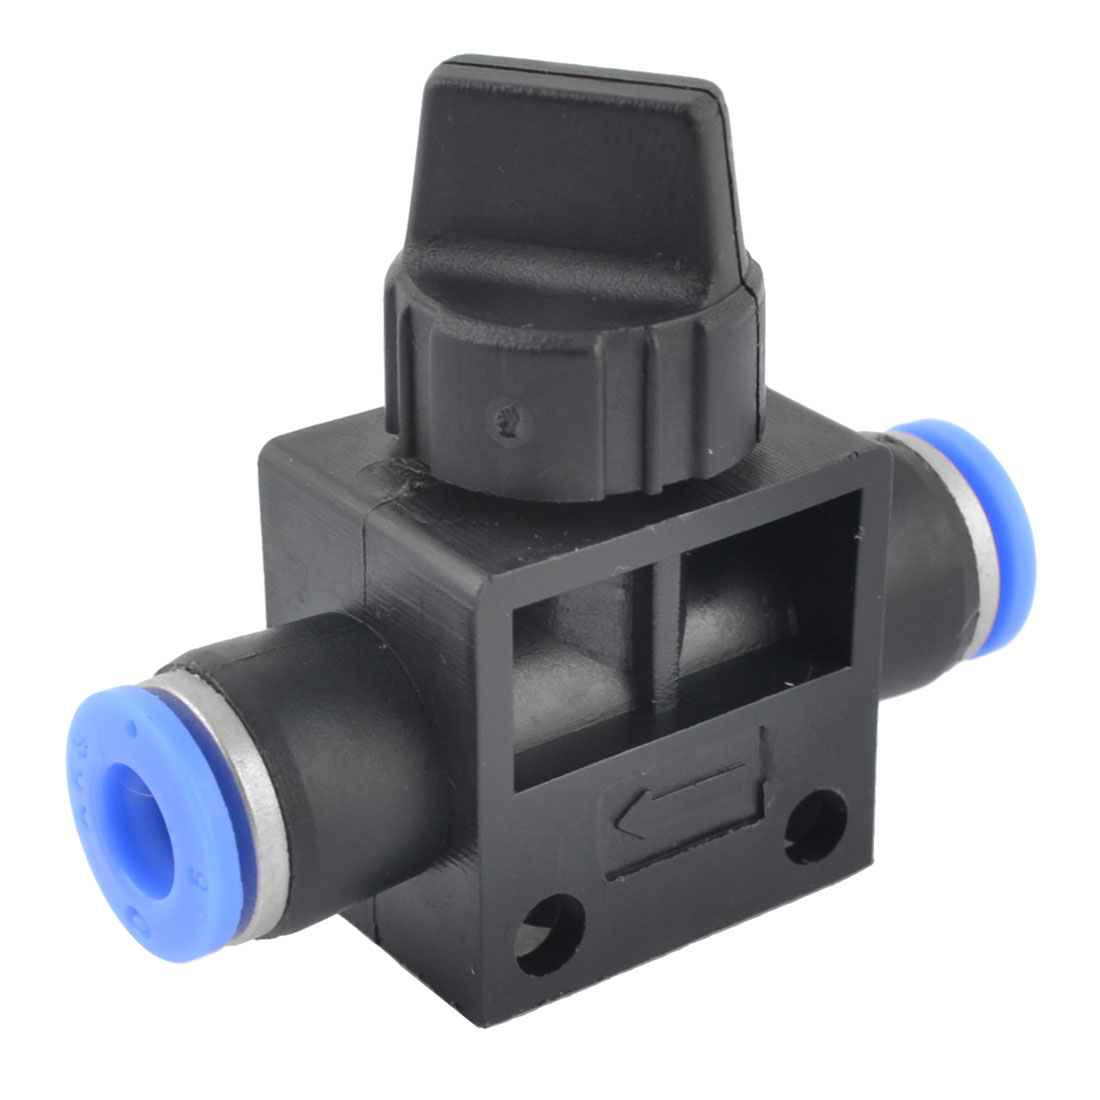 Quarter Turn Switch Blue Black Plastic 6mm Hose Pipe Fitting Coupler Ball Valve